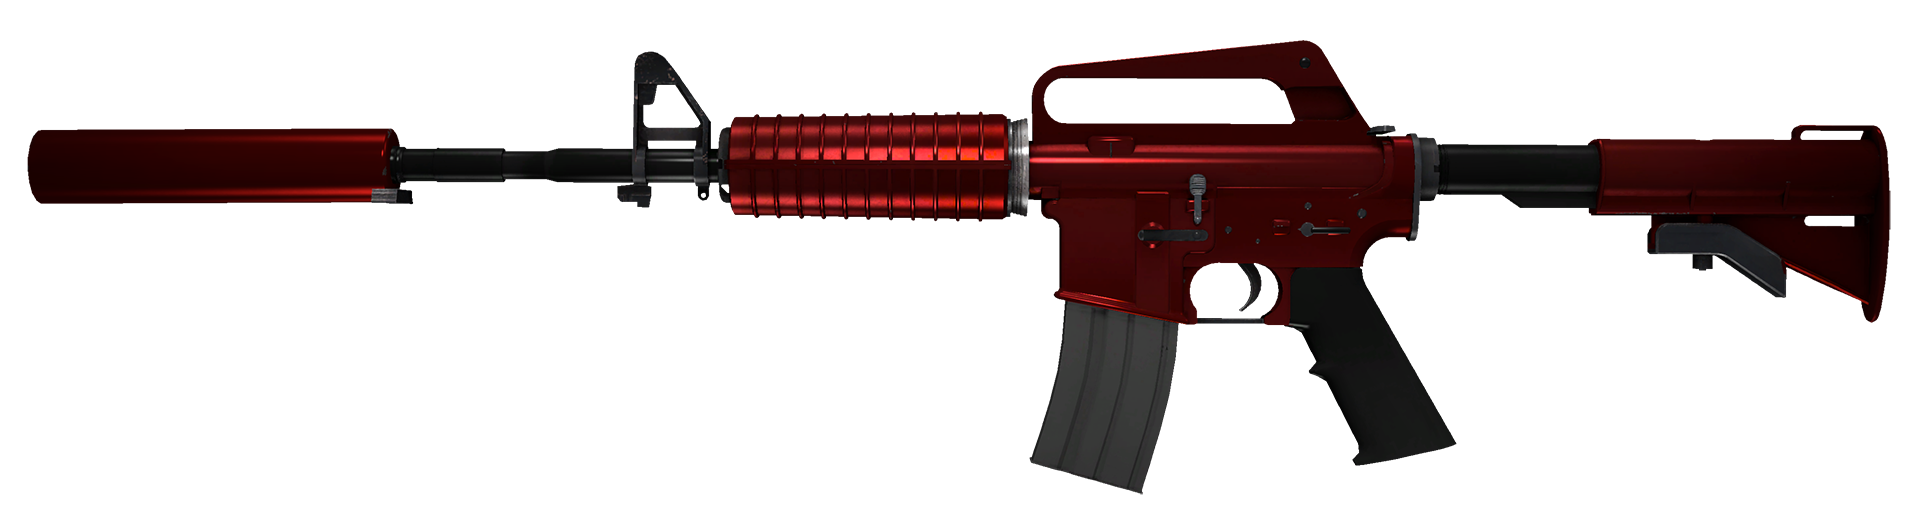 M4A1-S Hot Rod Large Rendering